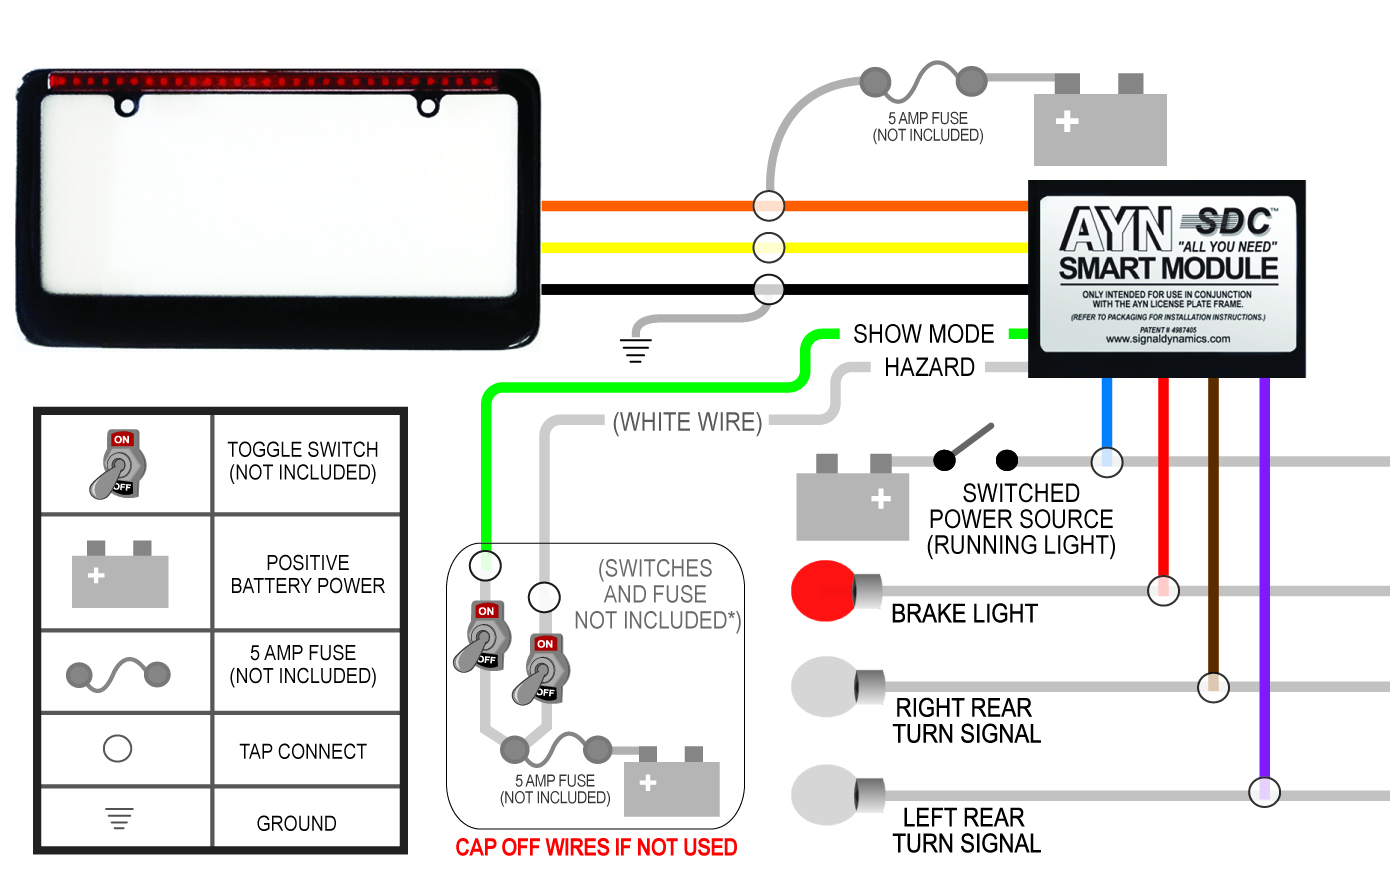 Motorcycle Light Wiring Diagram For Tail Rear Turn Signal Hazard Image Auto On